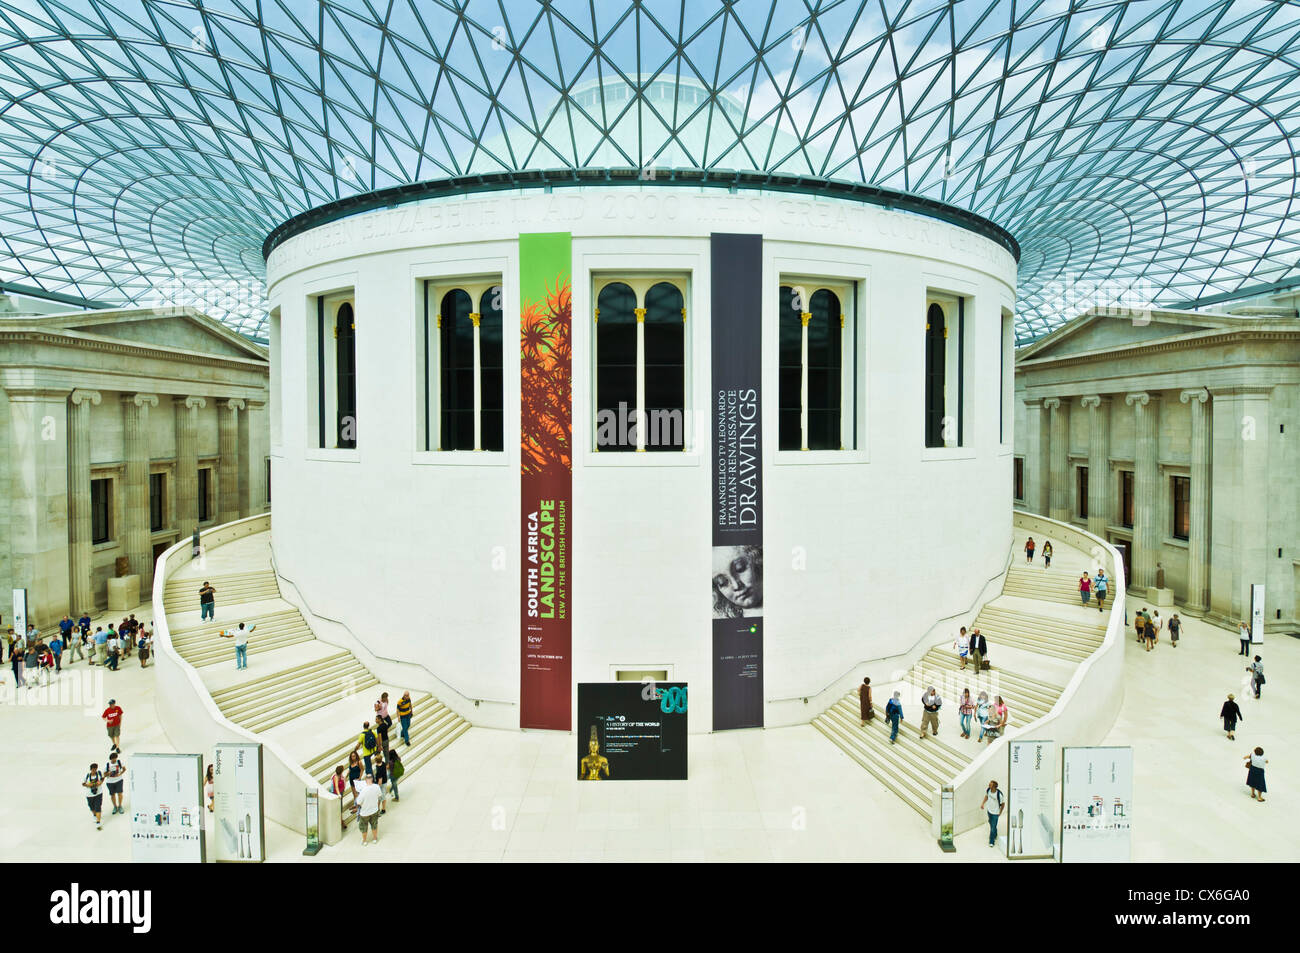 Queen Elizabeth II 'Great Court' glass roof designed by architect Norman Foster British Museum London UK - Stock Image